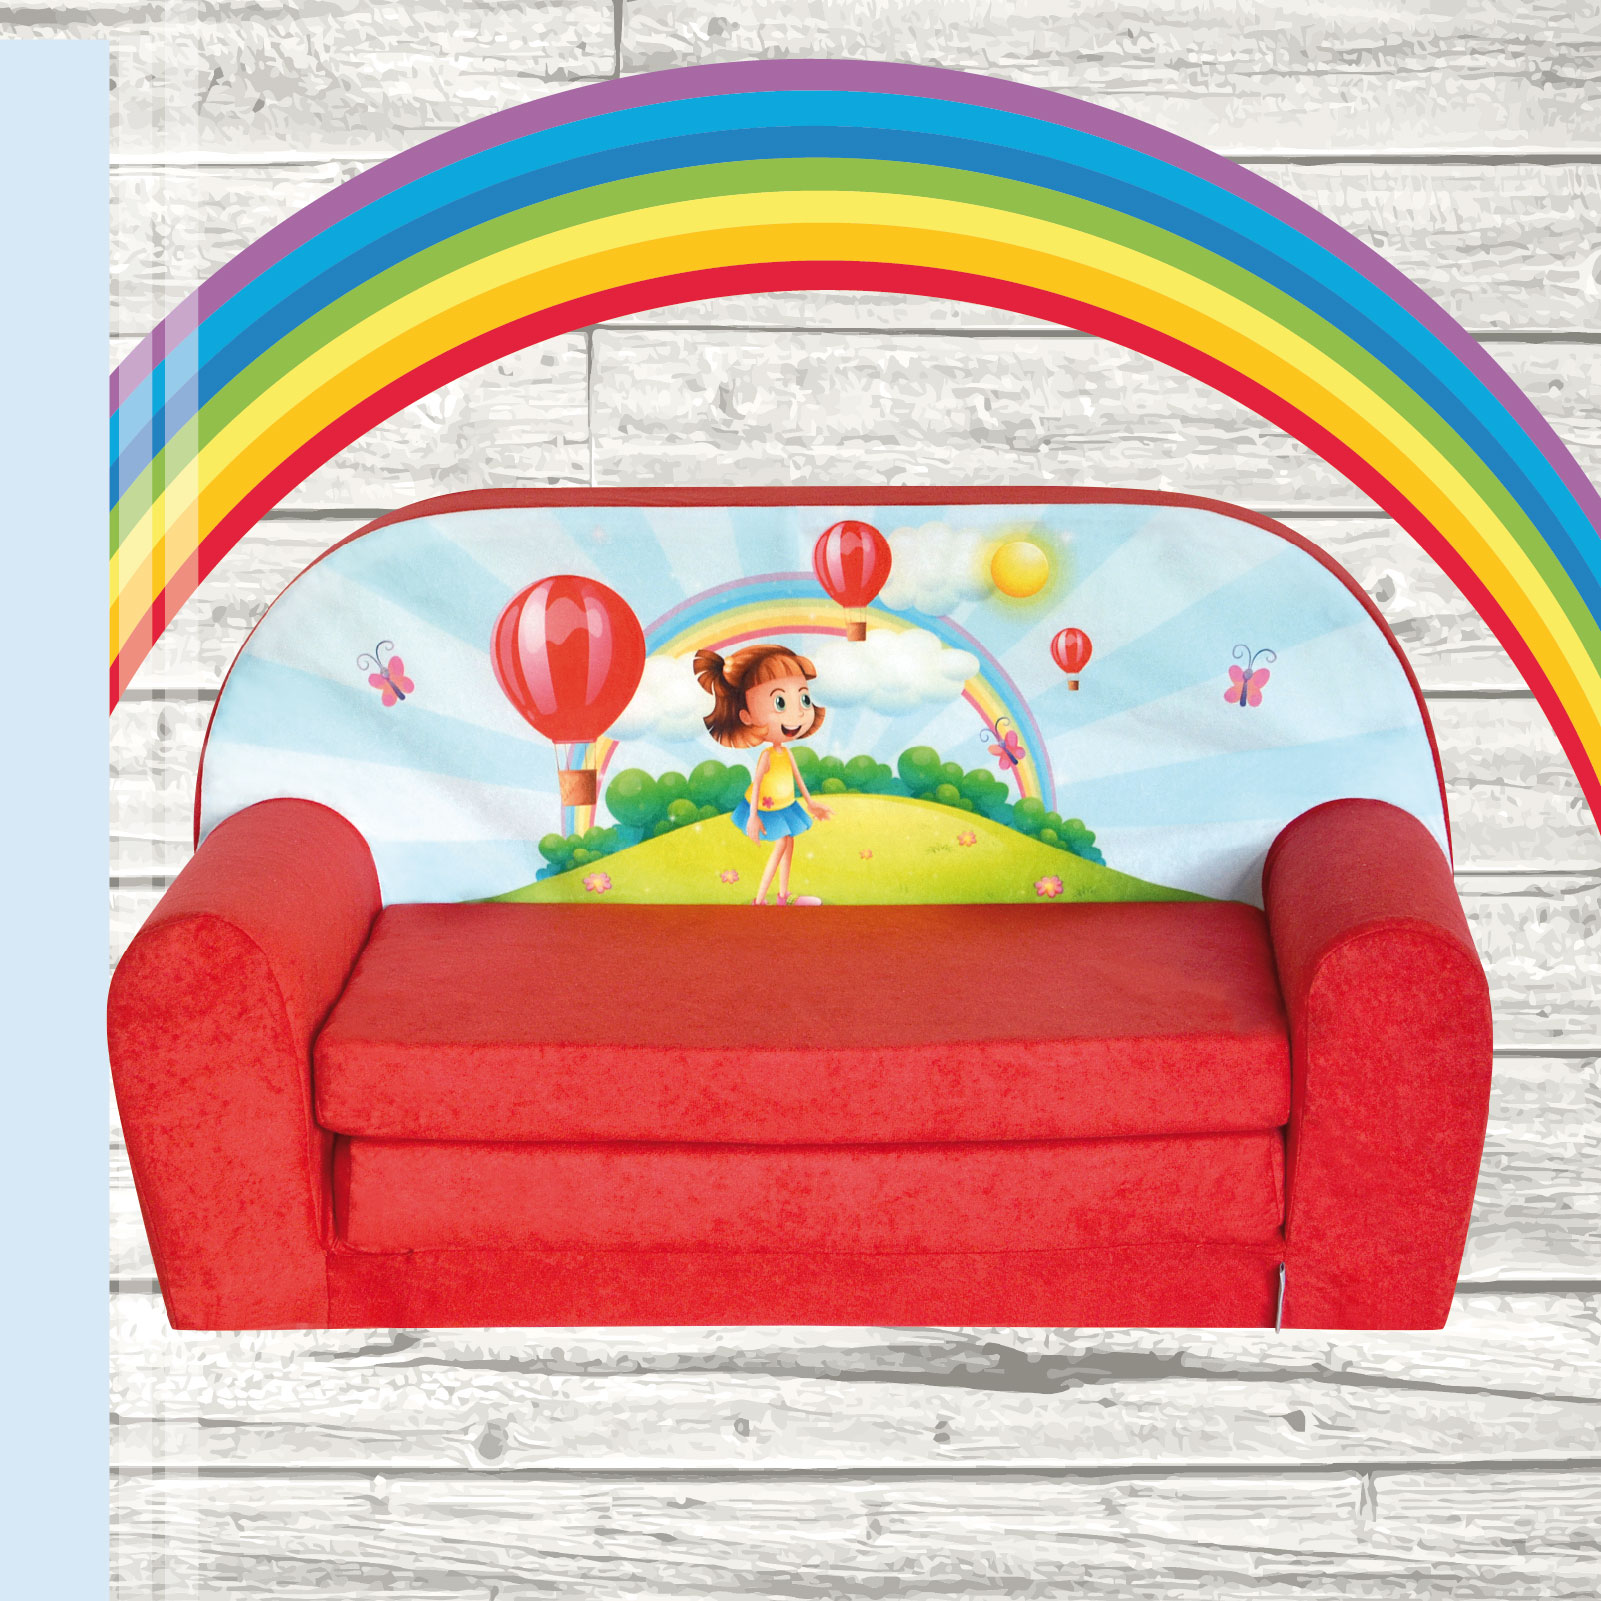 mini canap lit enfant convertible sofa fauteuil ebay. Black Bedroom Furniture Sets. Home Design Ideas